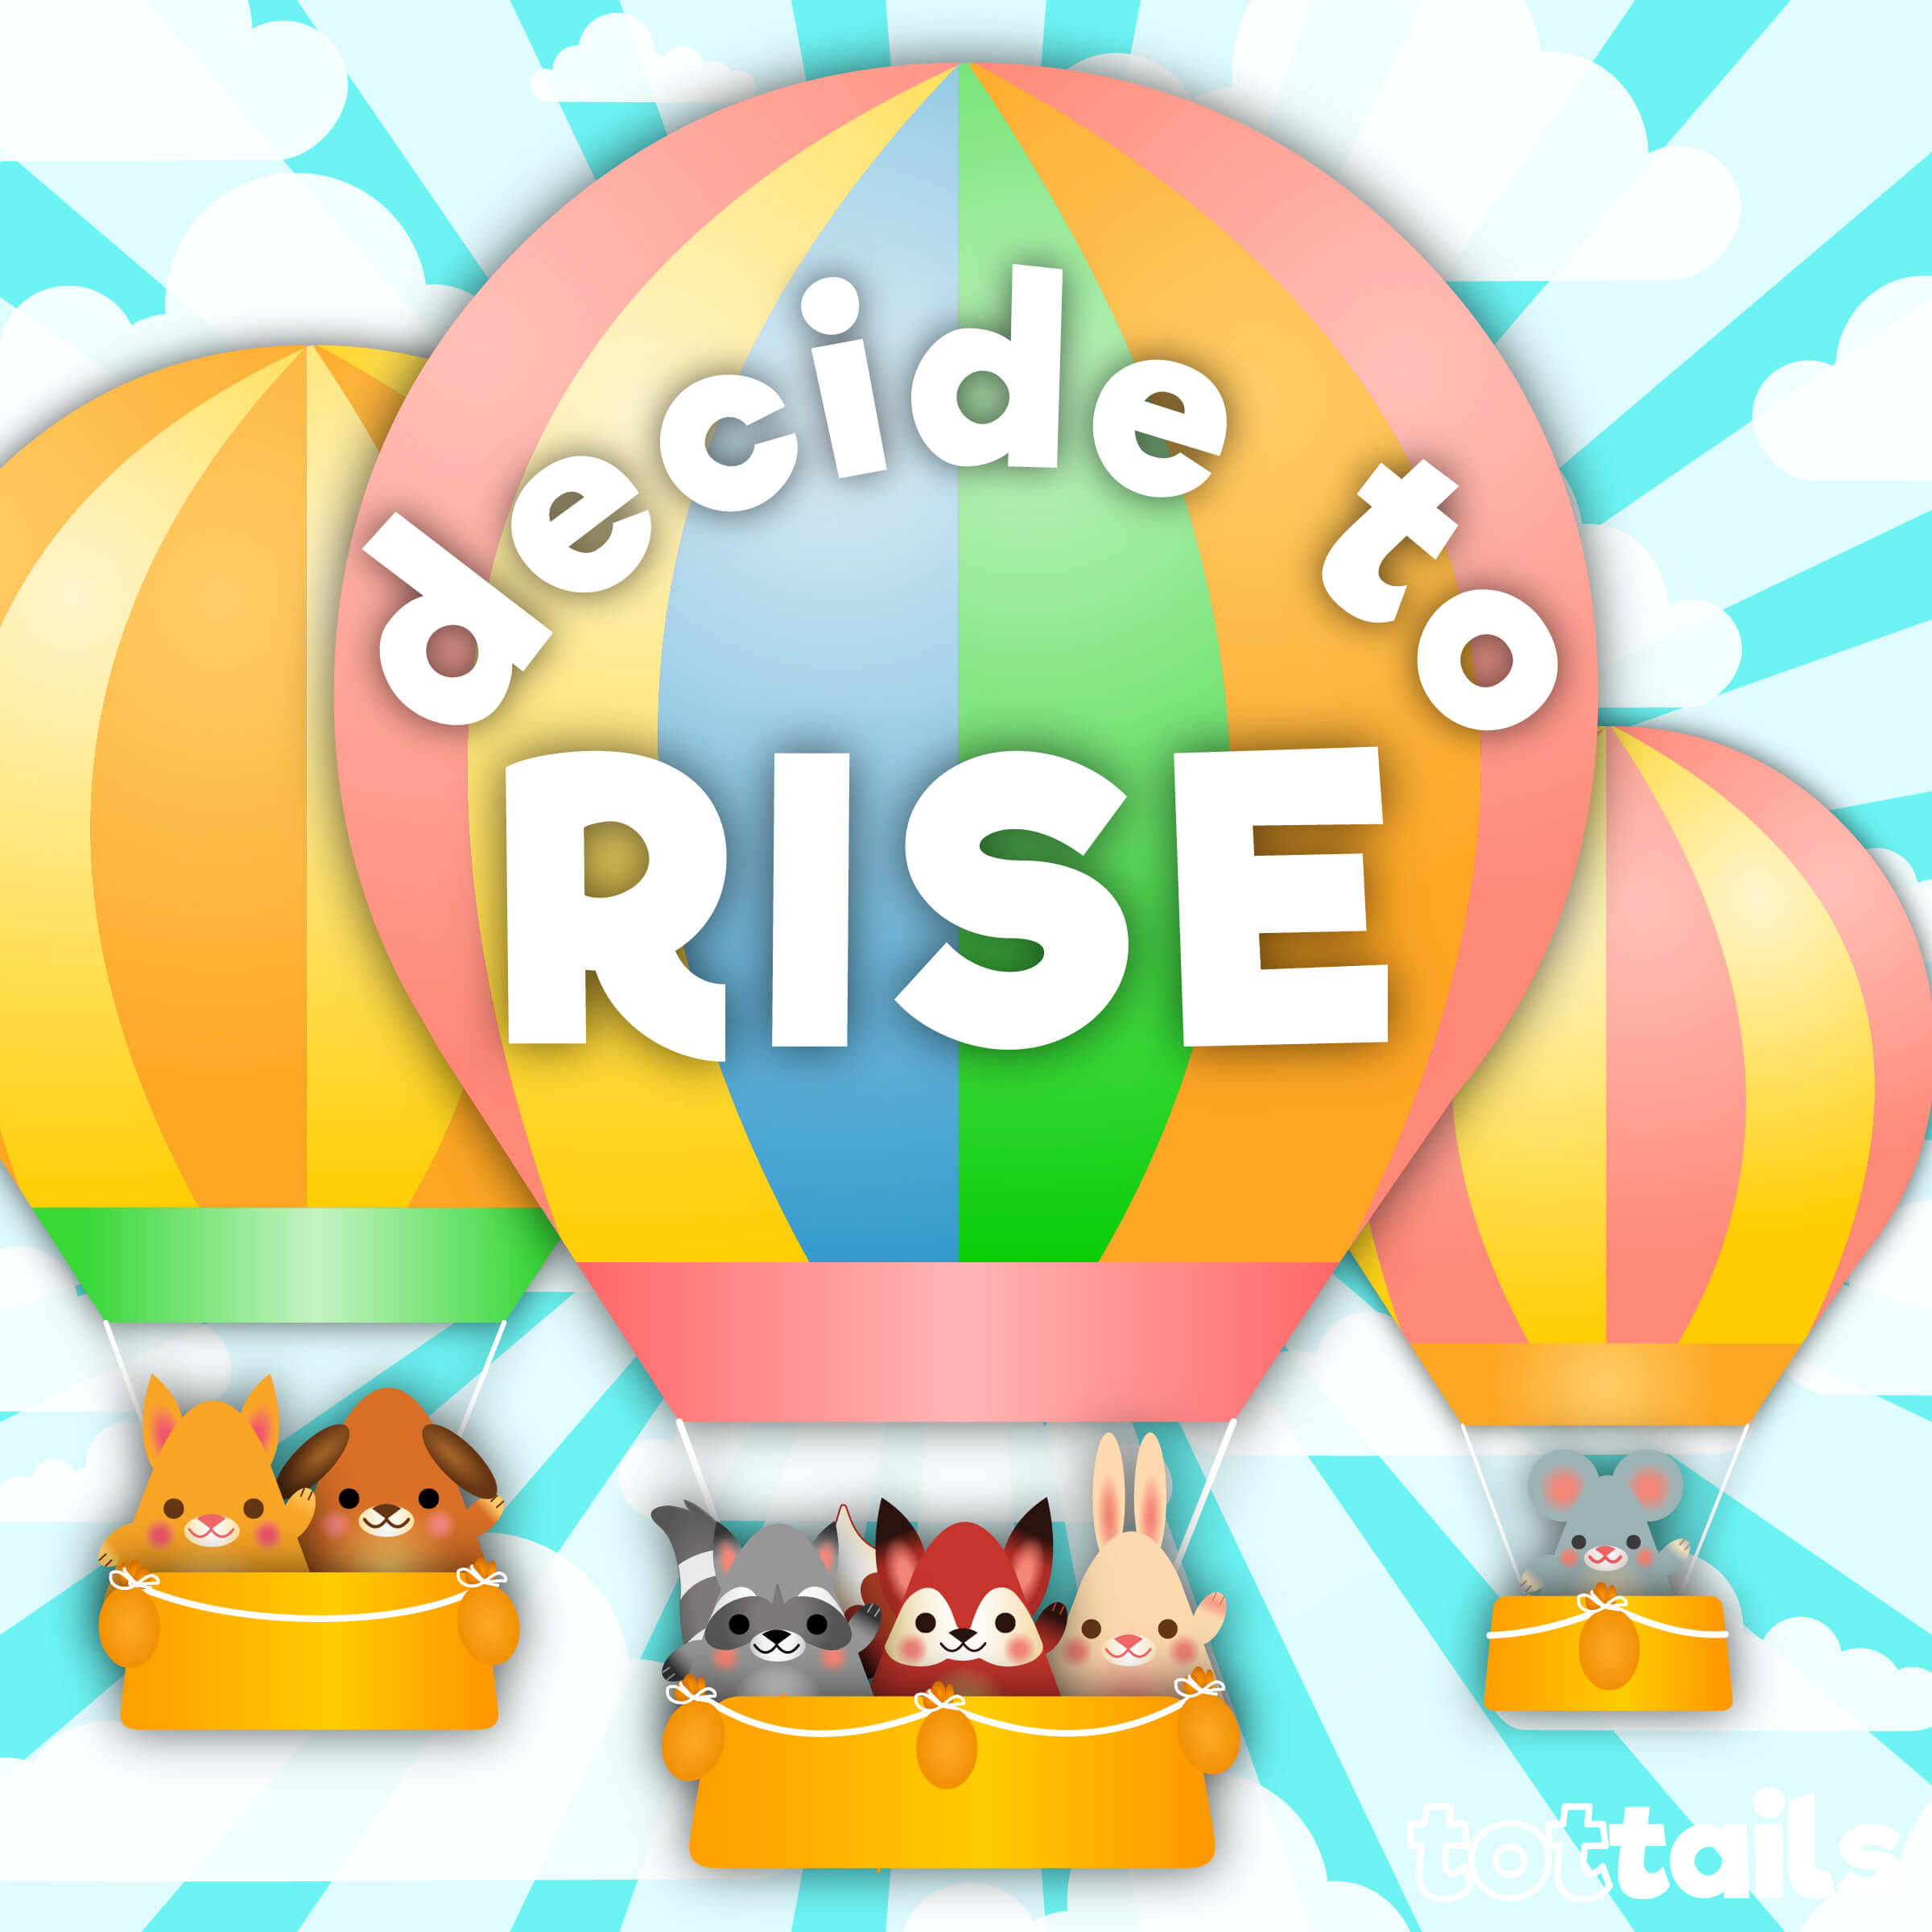 Positivity for kids - decide to rise